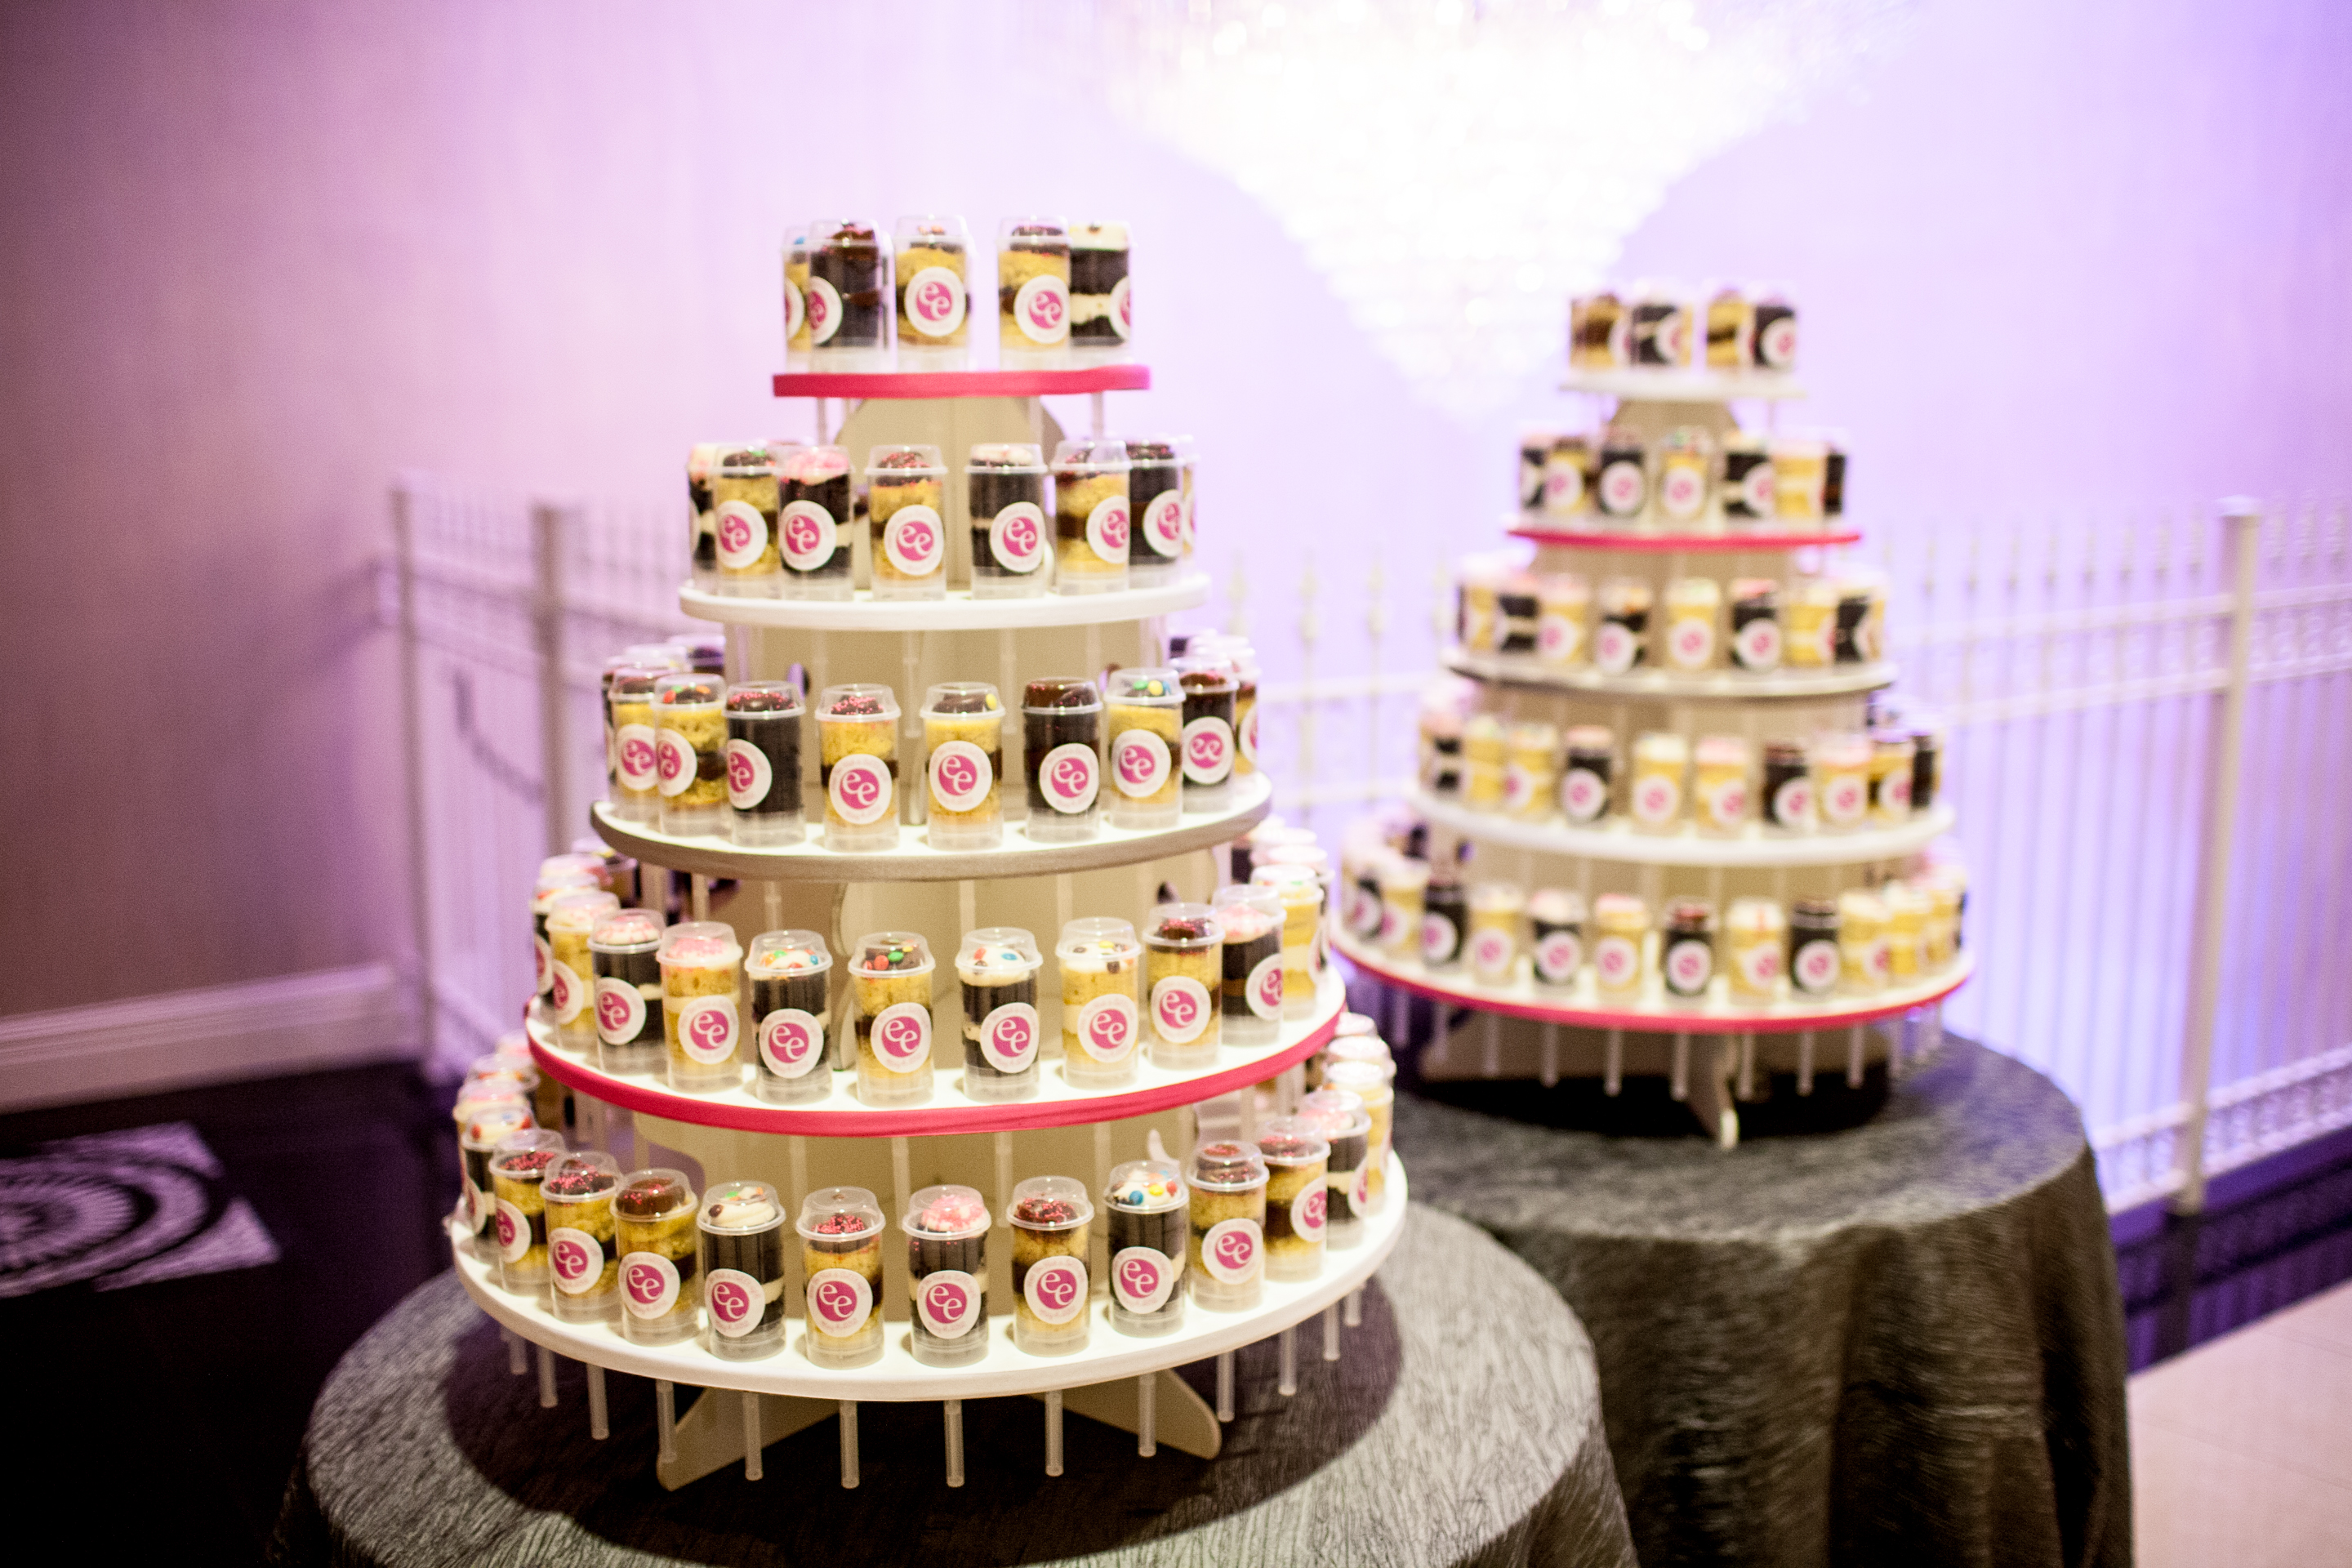 Fantastic Cupcake Wedding Cakes Huge Square Wedding Cakes Round Italian Wedding Cake Martini My Big Fat Greek Wedding Bundt Cake Youthful Walmart Wedding Cakes Cost DarkZombie Wedding Cake Go Cakes NYC  The Push Pop Cake You Can Eat On The Go!